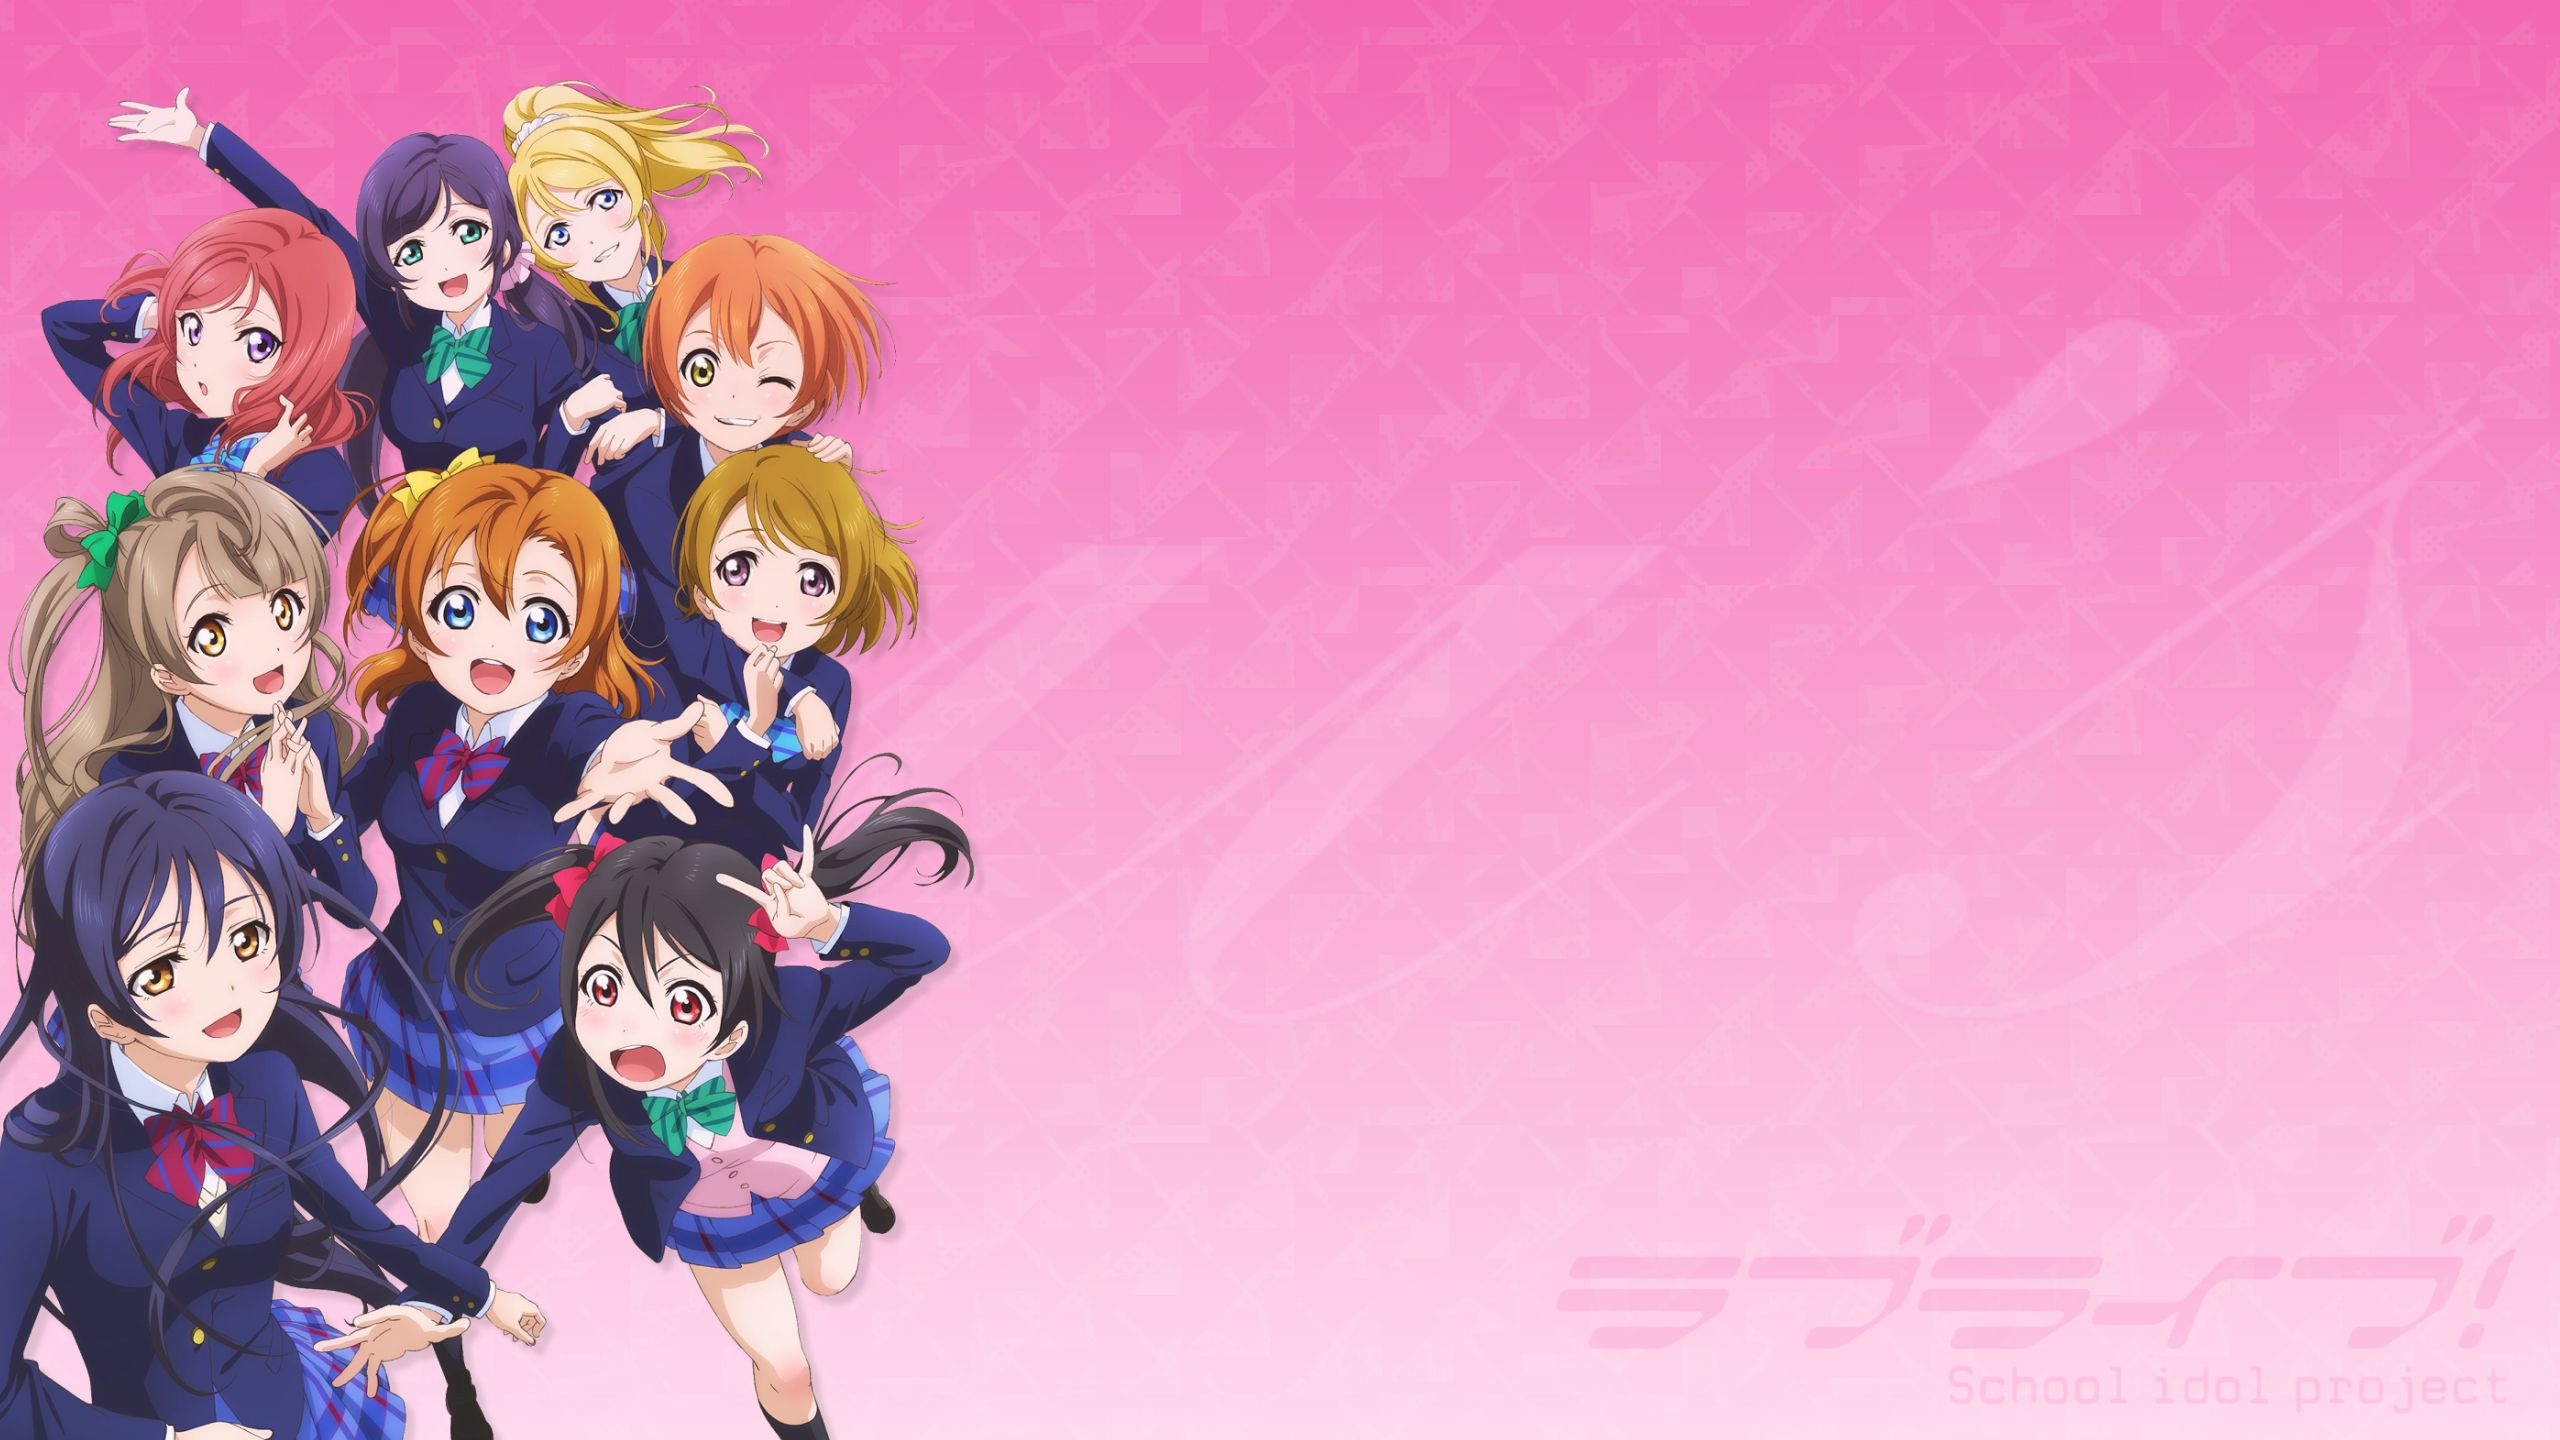 Tree Of Love Live Wallpaper Android Apps On Google Play 1920 1080 Love Live Wallpapers 31 Wallpapers Adorable Wal Live Wallpapers Girl Wallpaper Wallpaper 31 live wallpaper anime